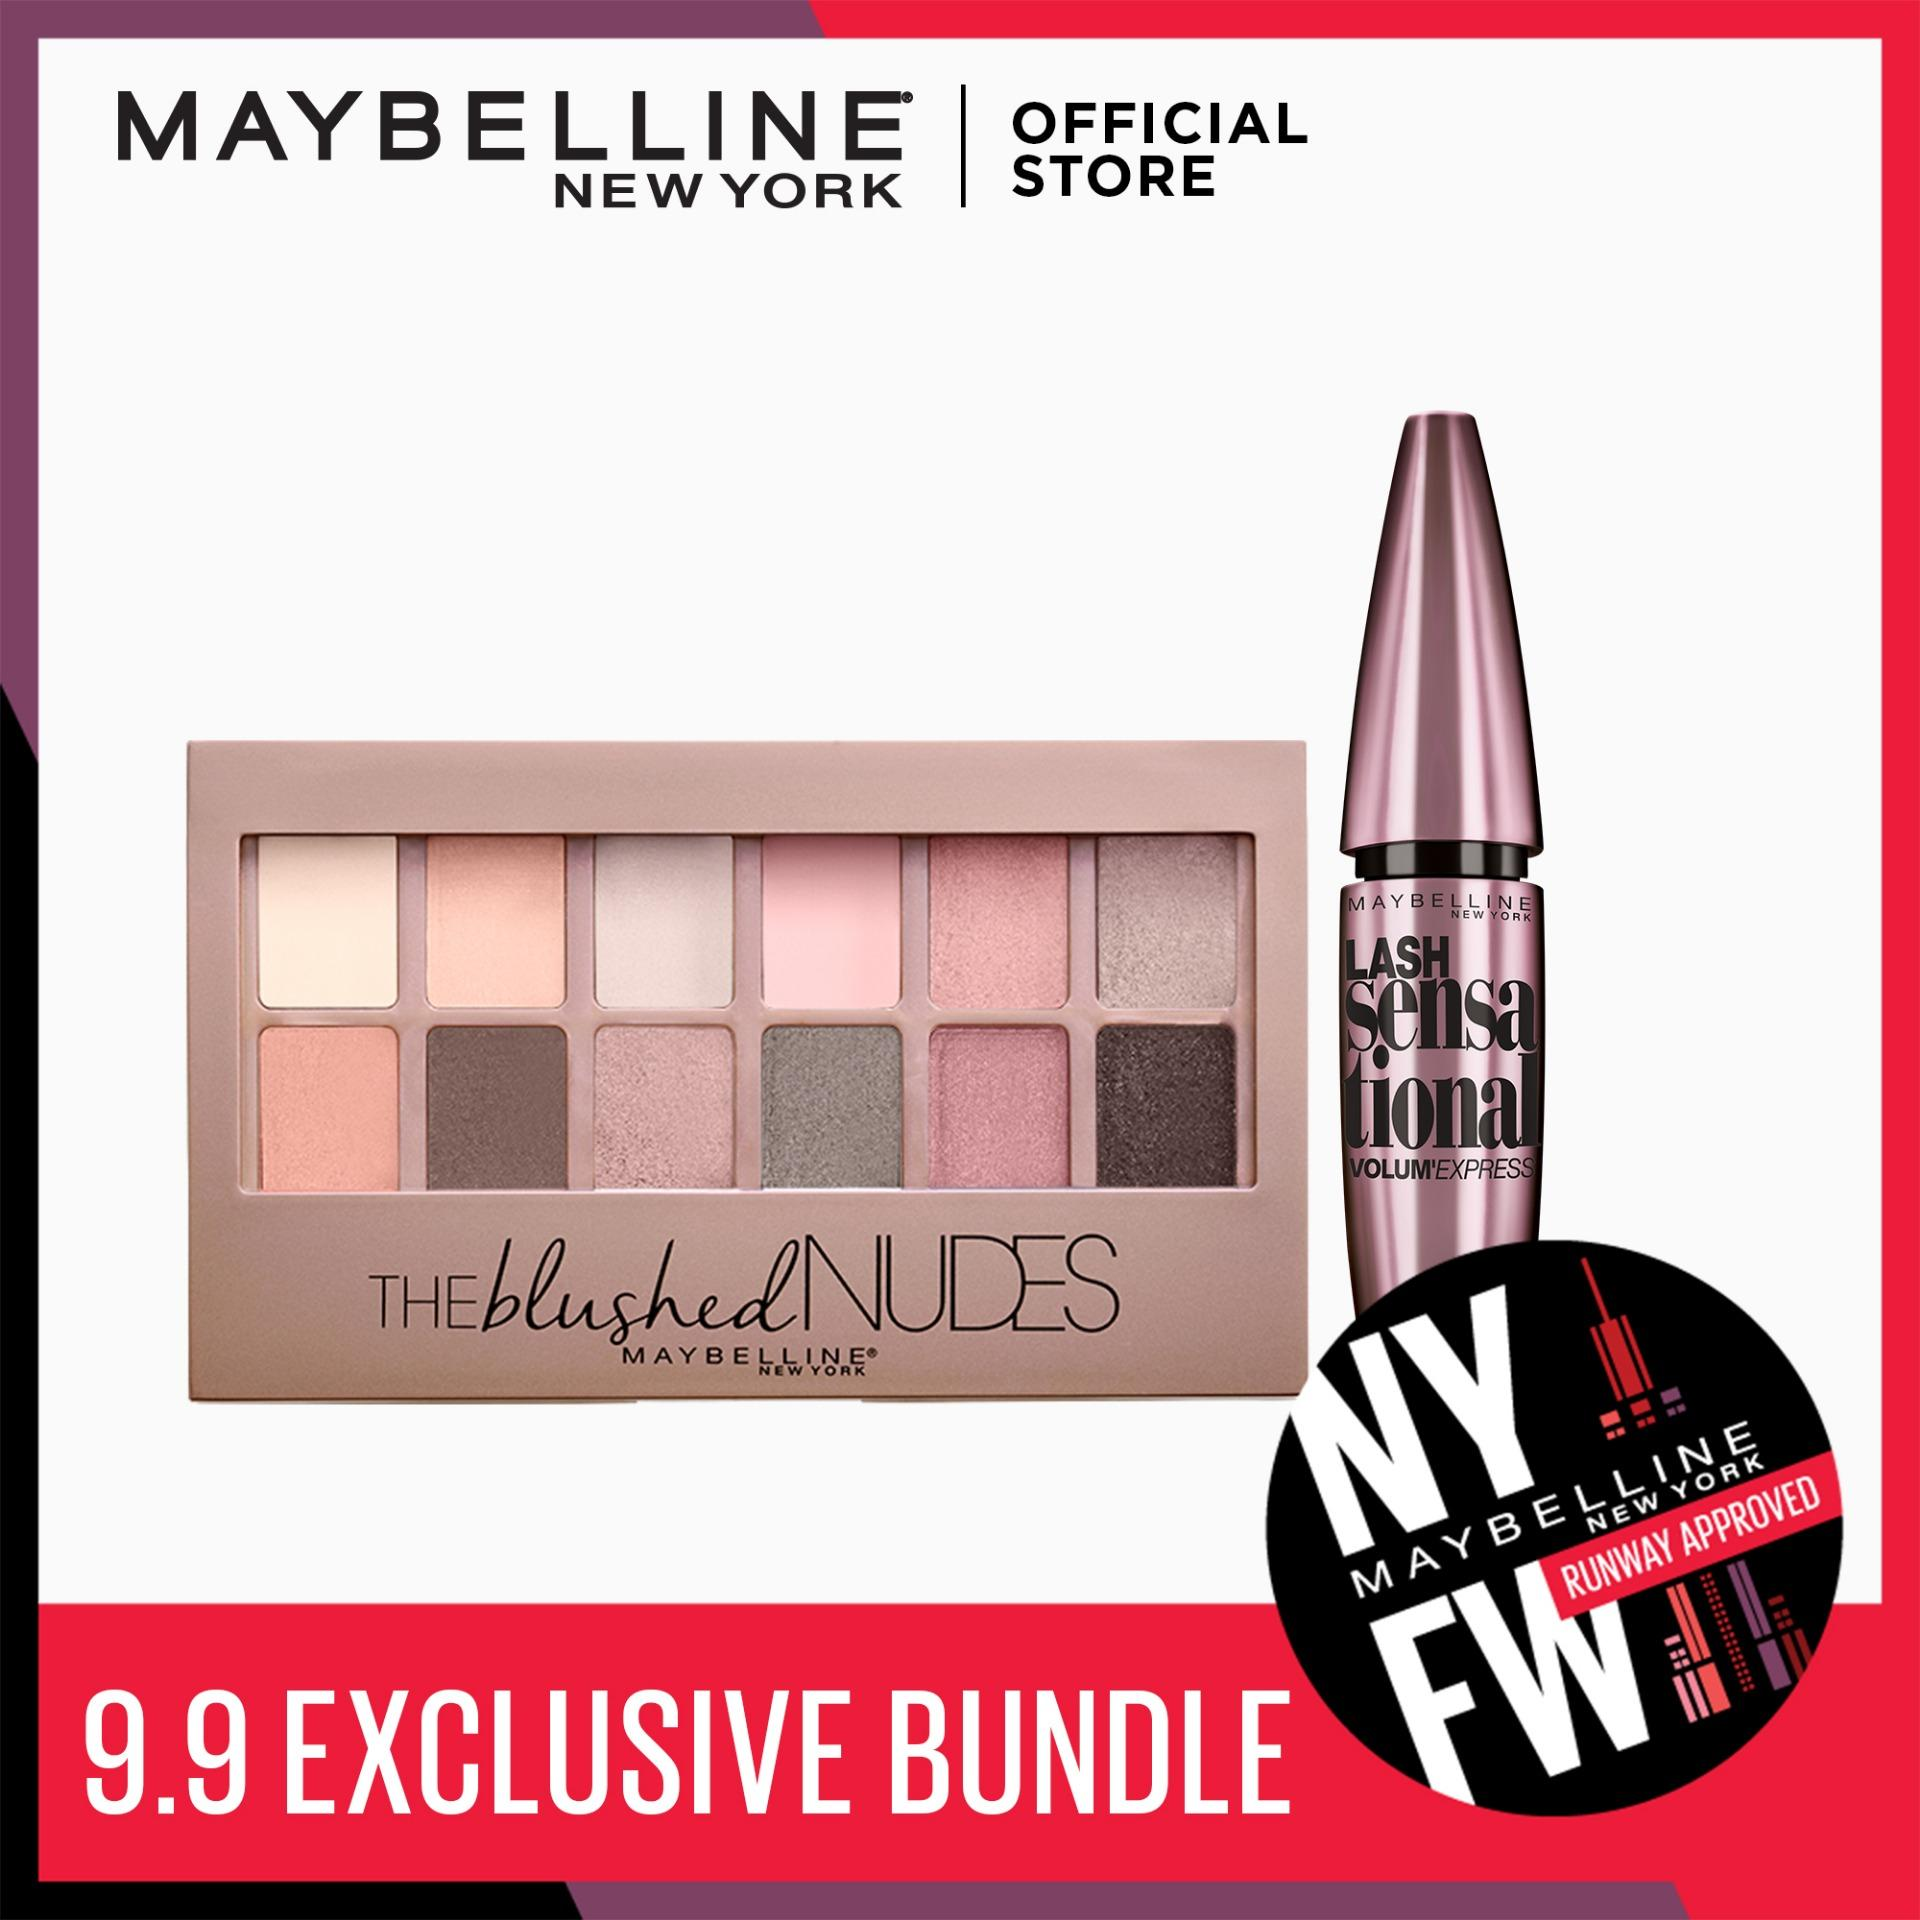 Maybelline Lash Sensational Mascara + The Blushed Nudes Eyeshadow Palette [EXCLUSIVE BUNDLE] Philippines